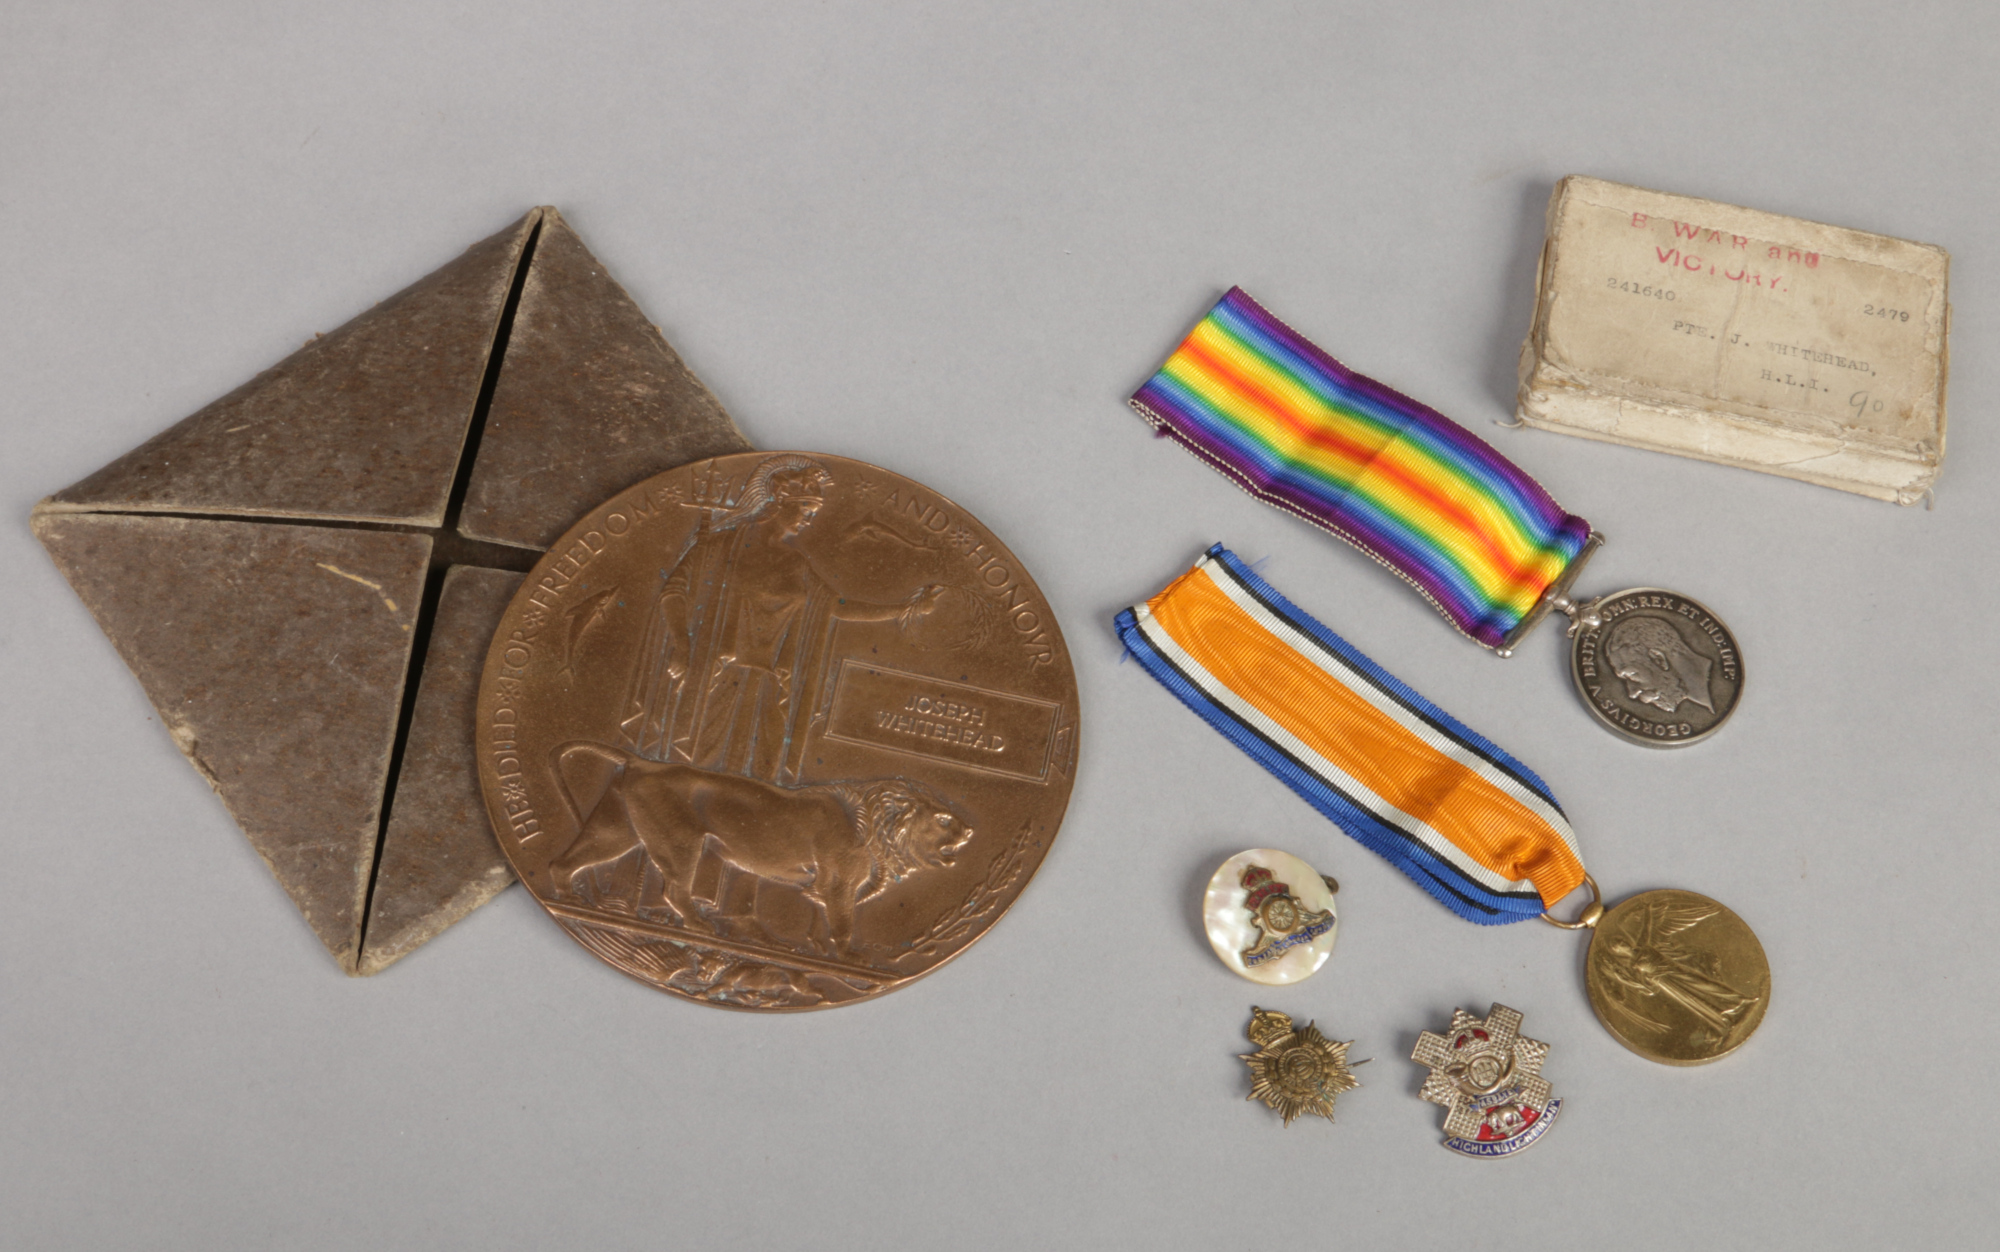 Lot 437 - A World War I memorial bronze death plaque, War medal and Victory medal awarded to 241640 Pte.